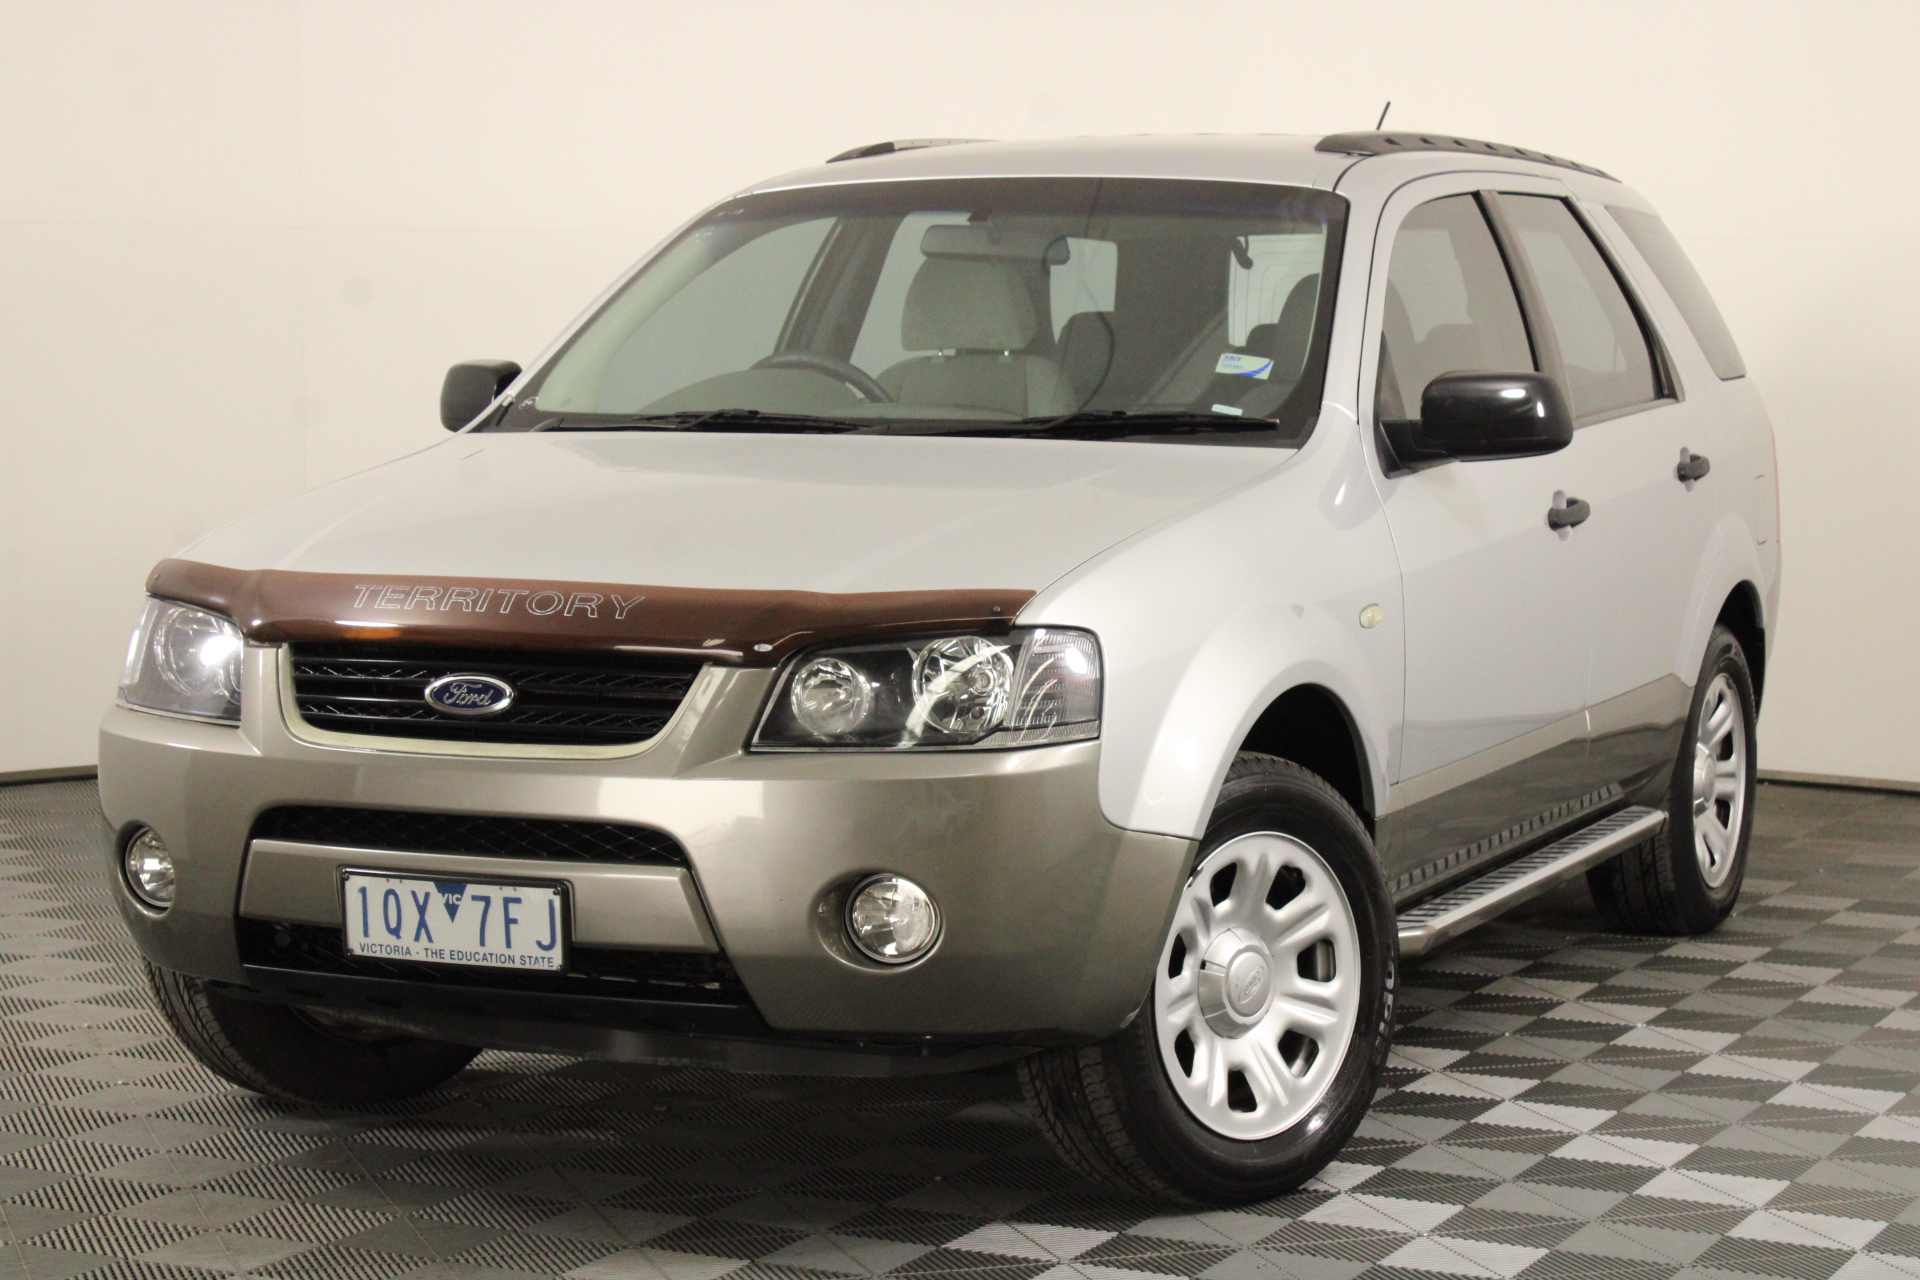 2006 Ford Territory TX (RWD) SY Automatic 7 Seats Wagon